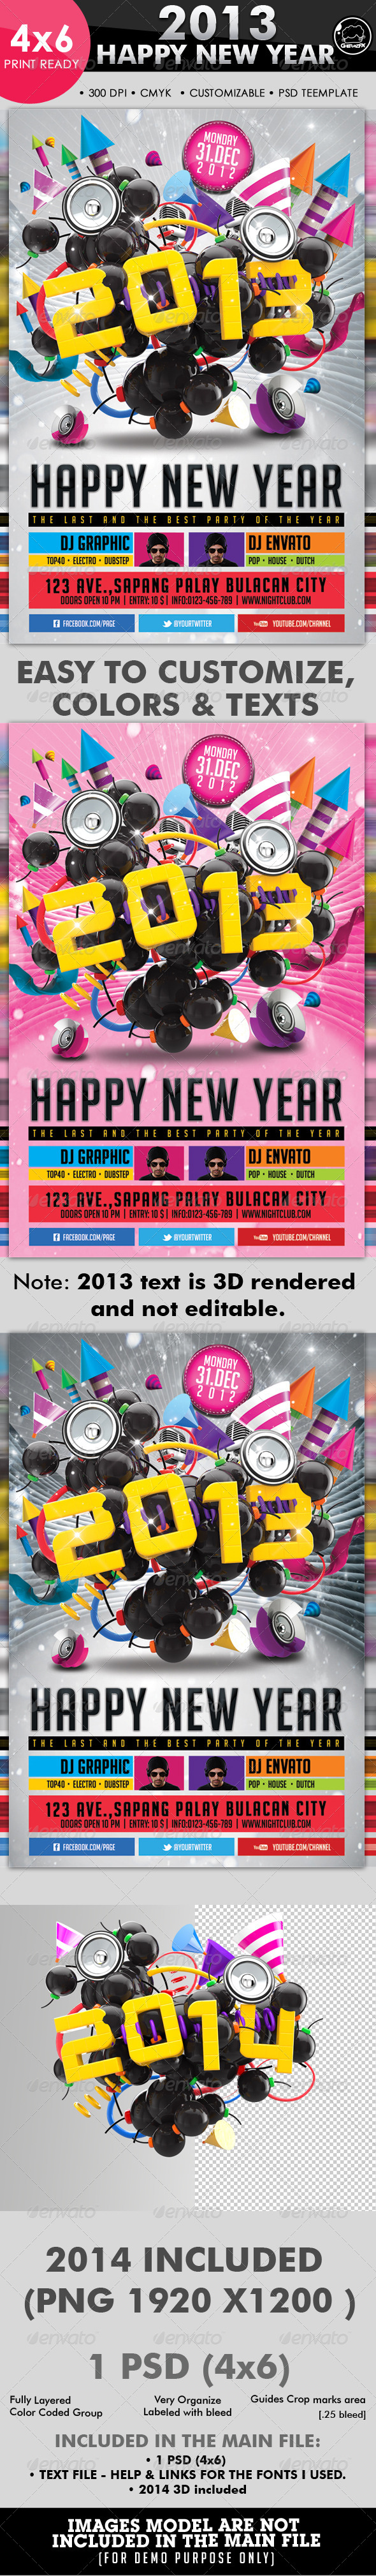 2013 Happy New Year Flyer Template - Clubs & Parties Events